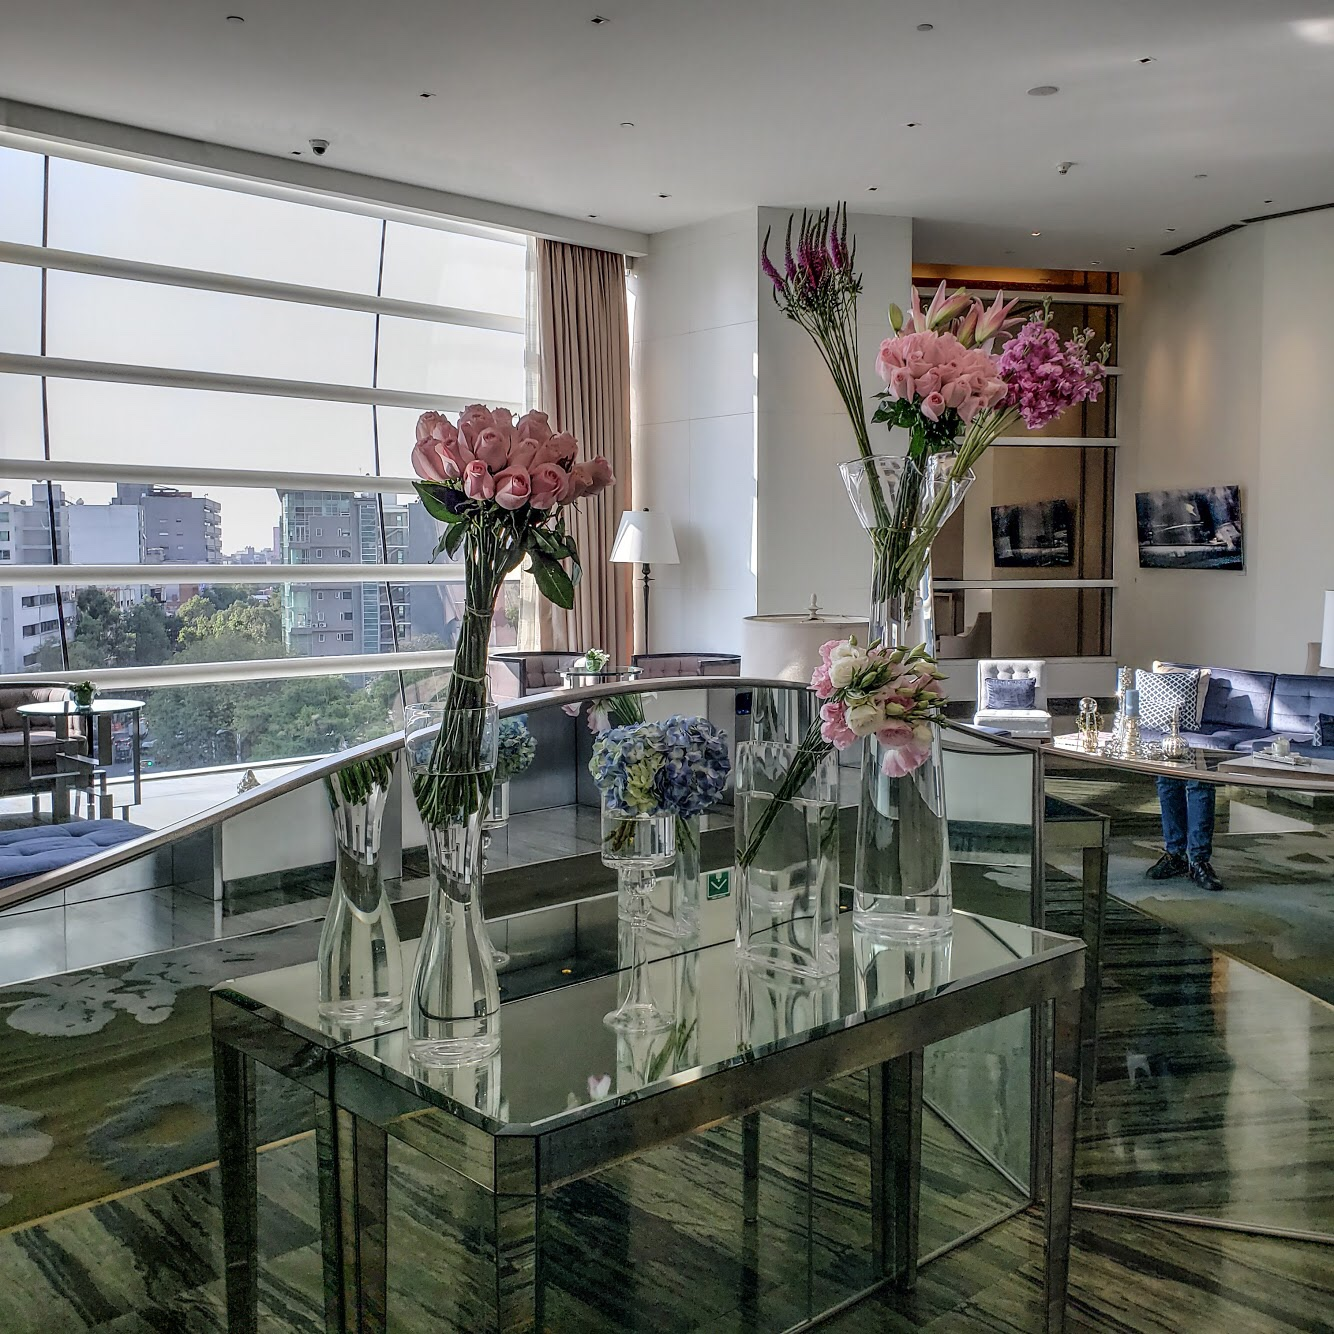 St Regis Mexico City - Luxury Hotel - Travel